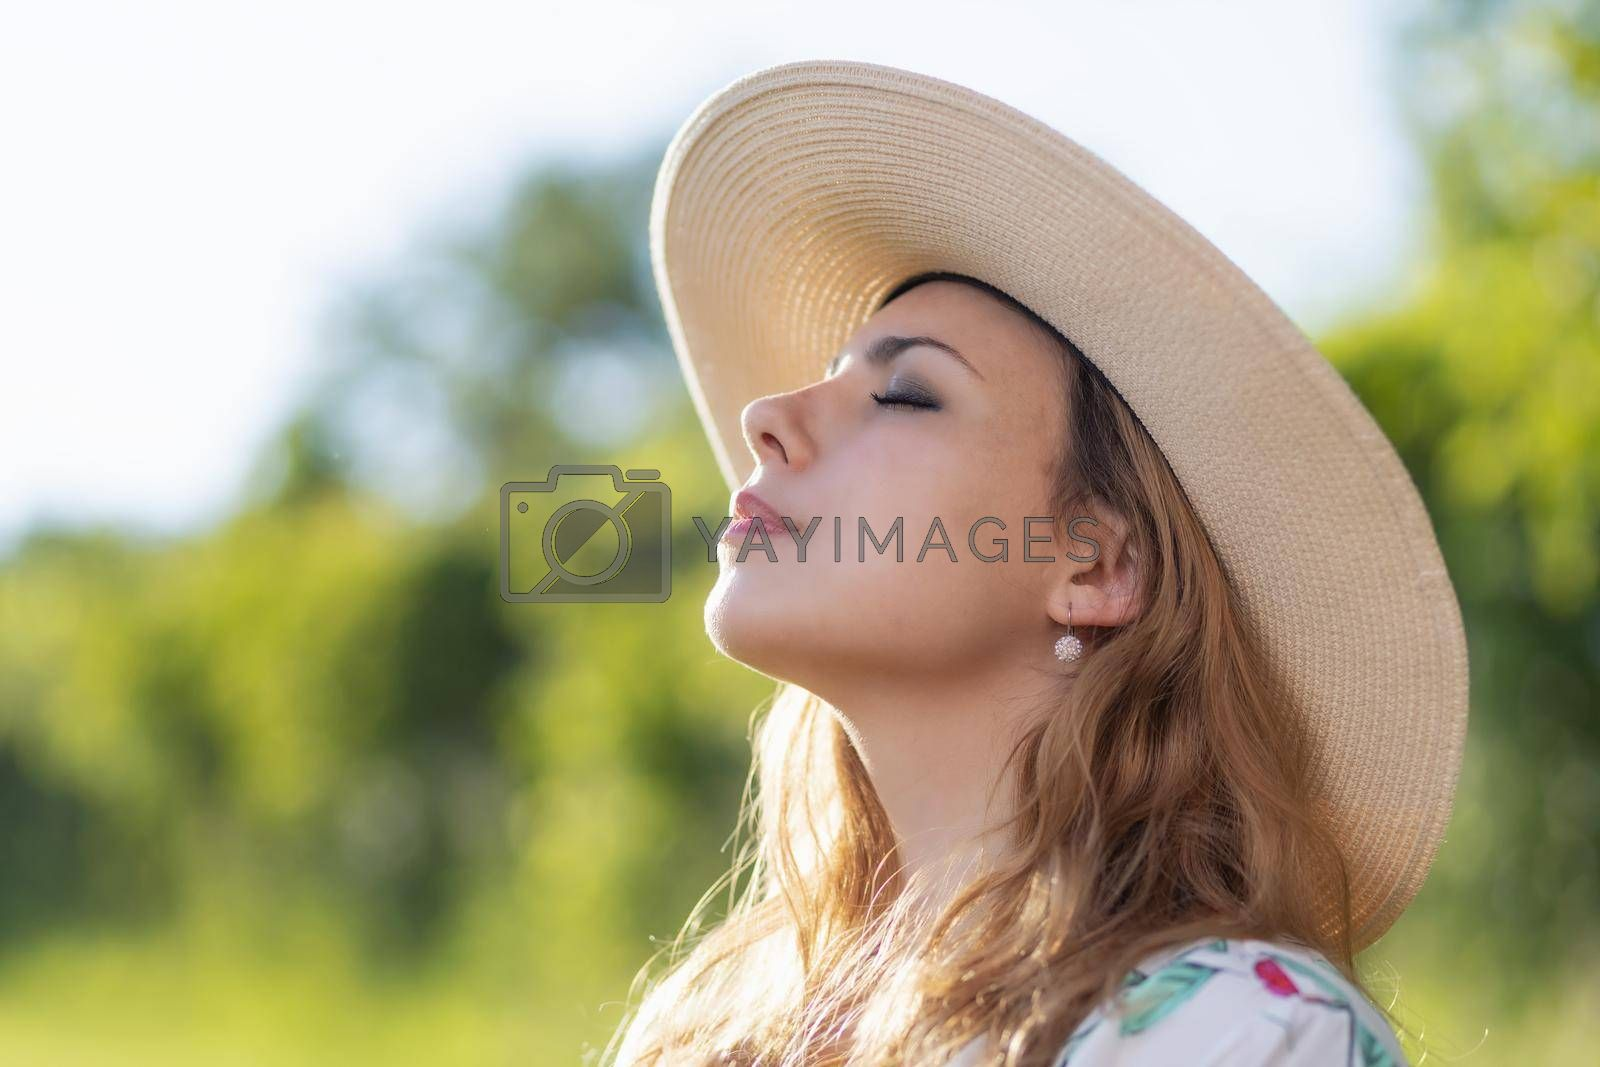 Royalty free image of Side view of sunbathing beautiful young woman. by Frank11